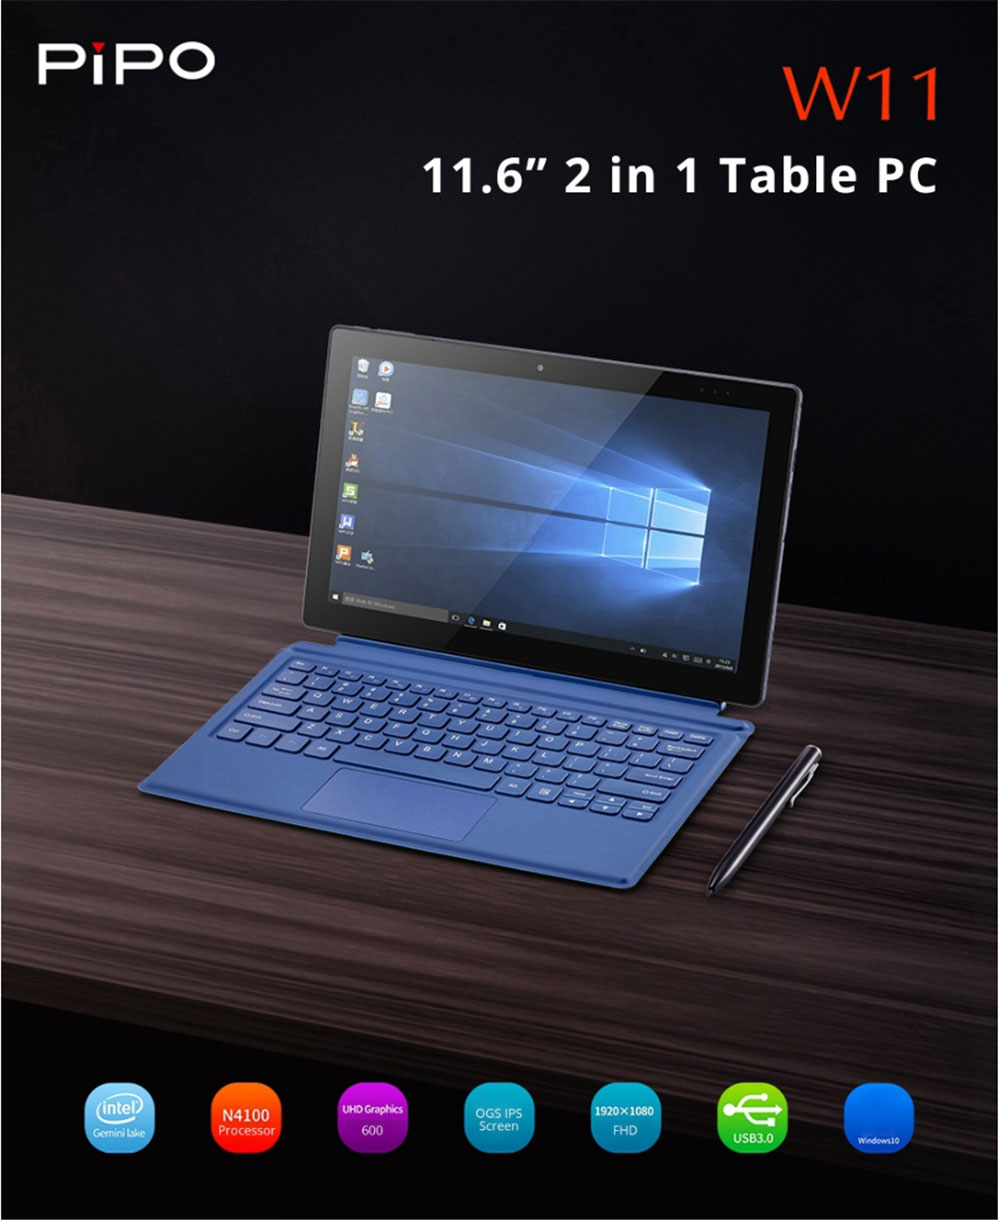 Pipo W11 2 in 1 Tablet PC with Keyboard and Stylus Pen